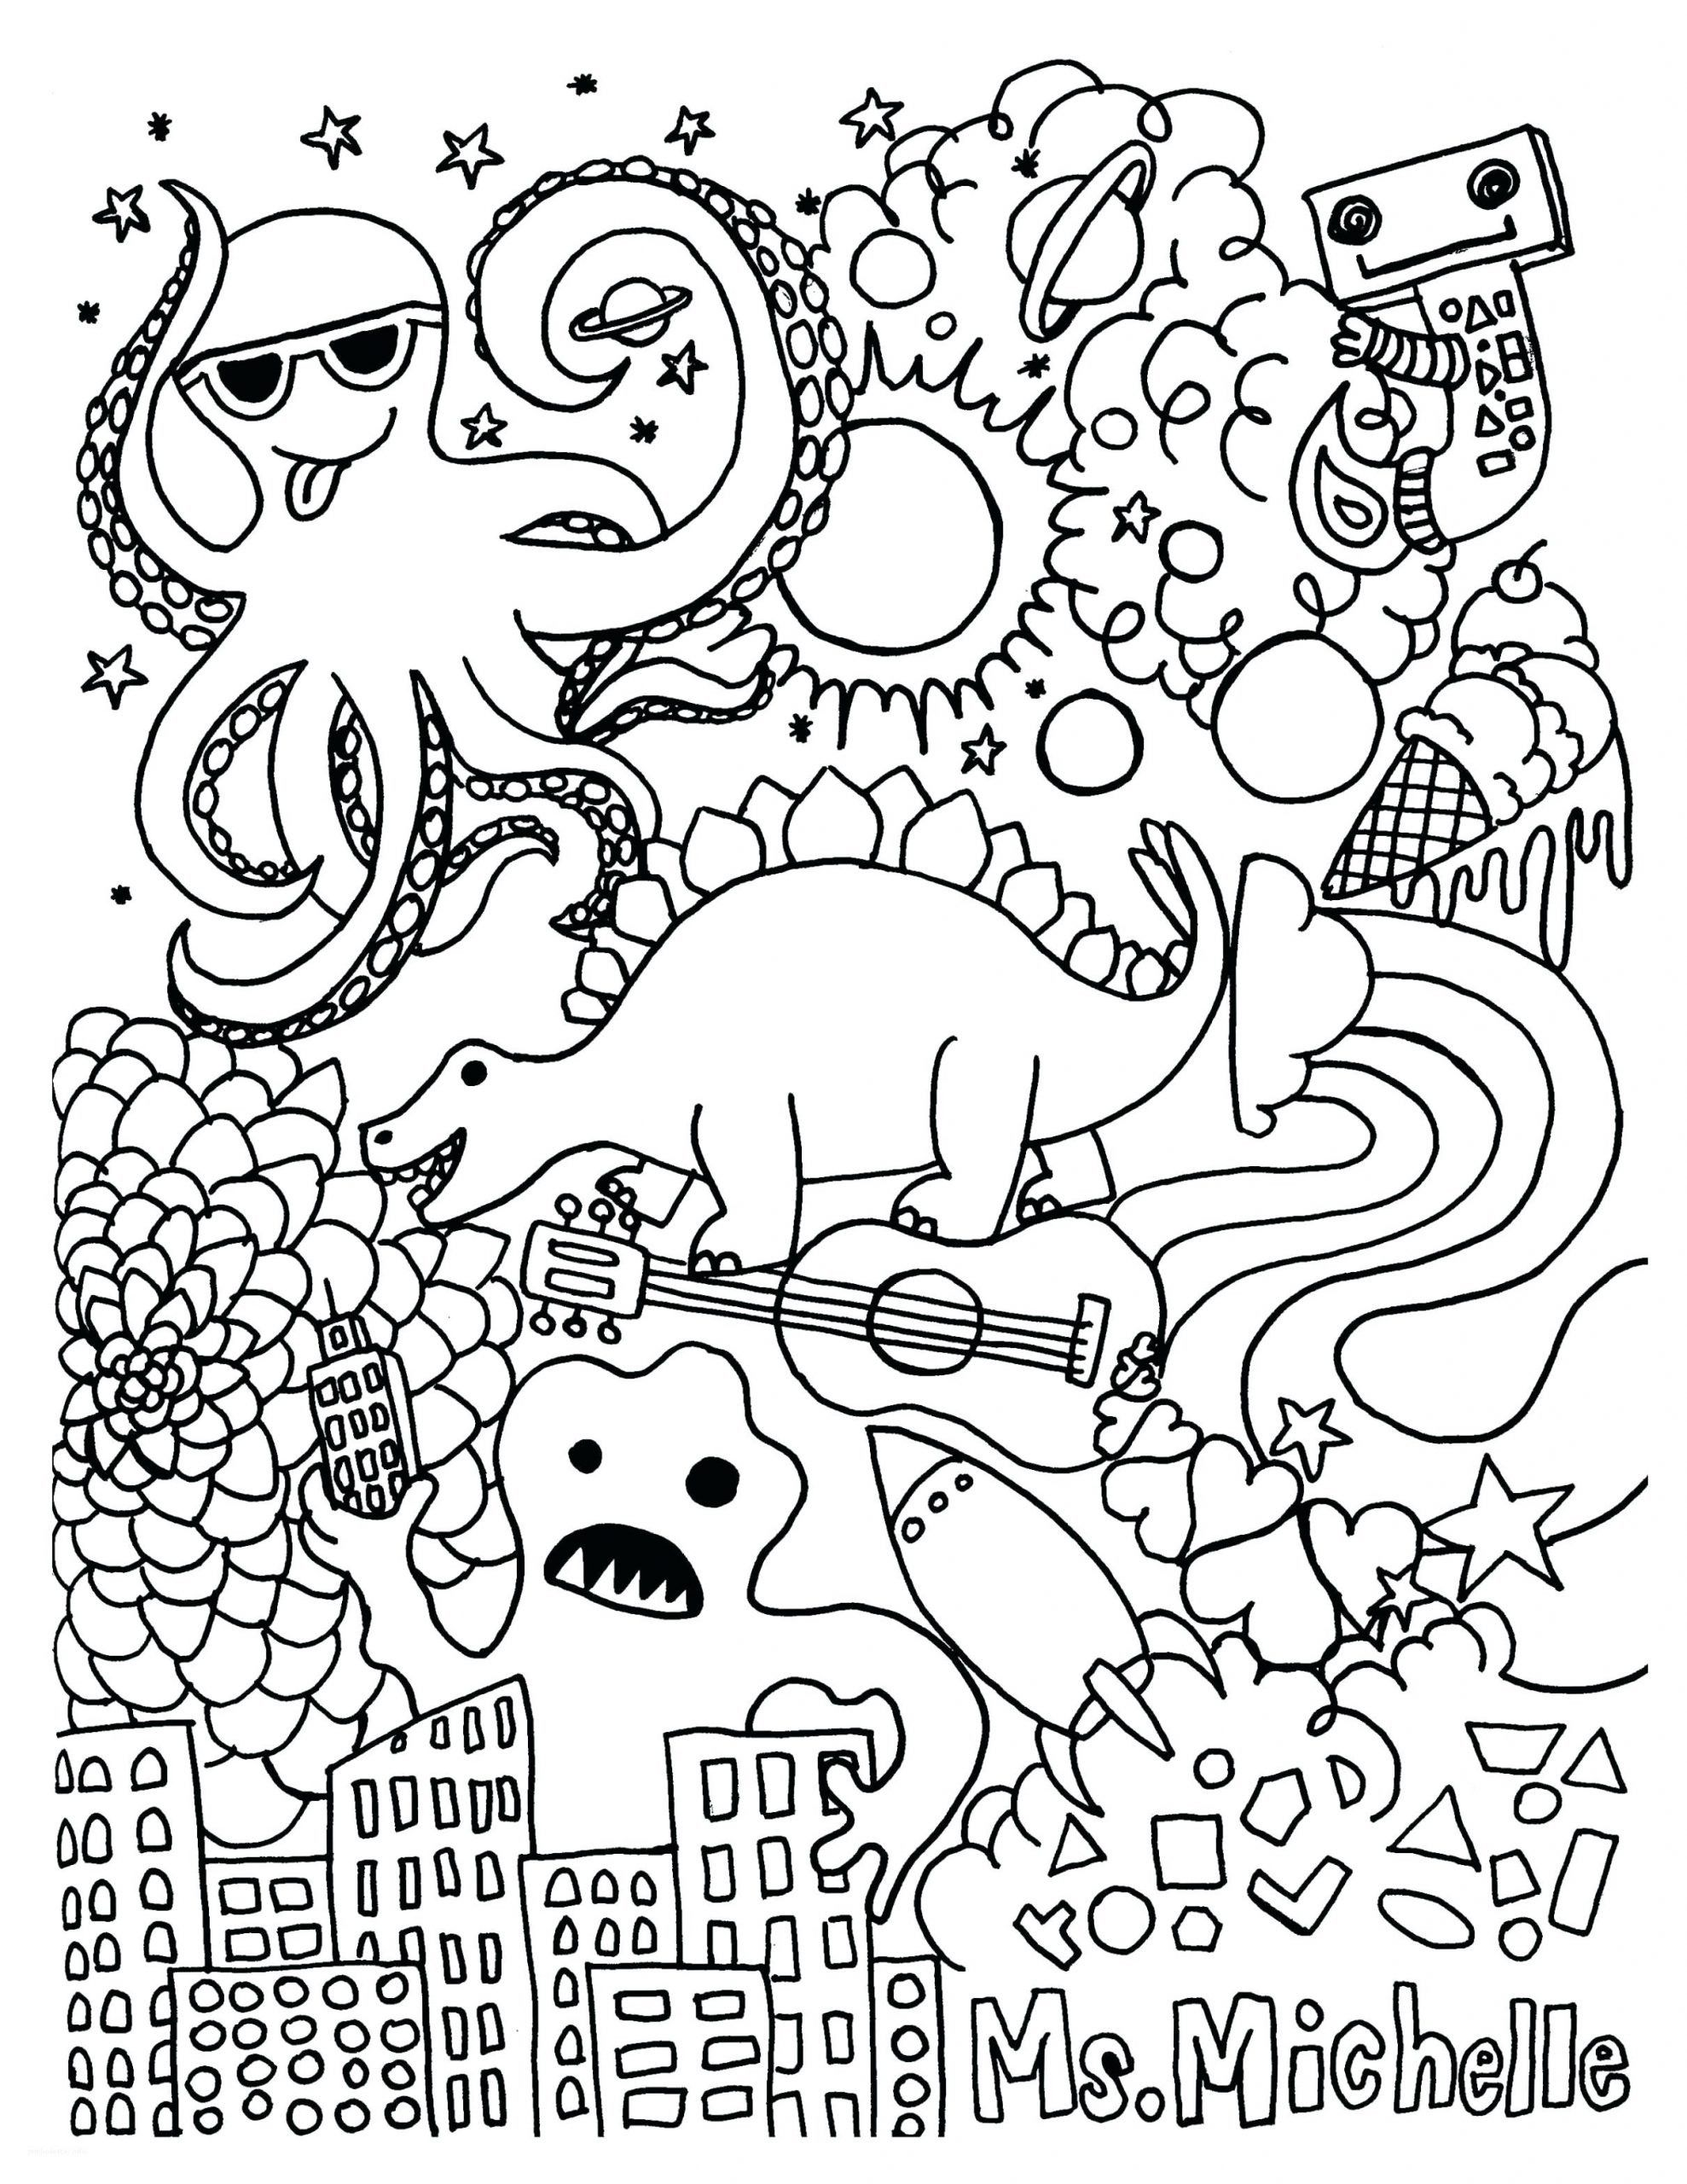 Colouring Page 2 Low Jpg 550 400 Girl Scout Camping Girl Scout Activities Brownies Girl Guides